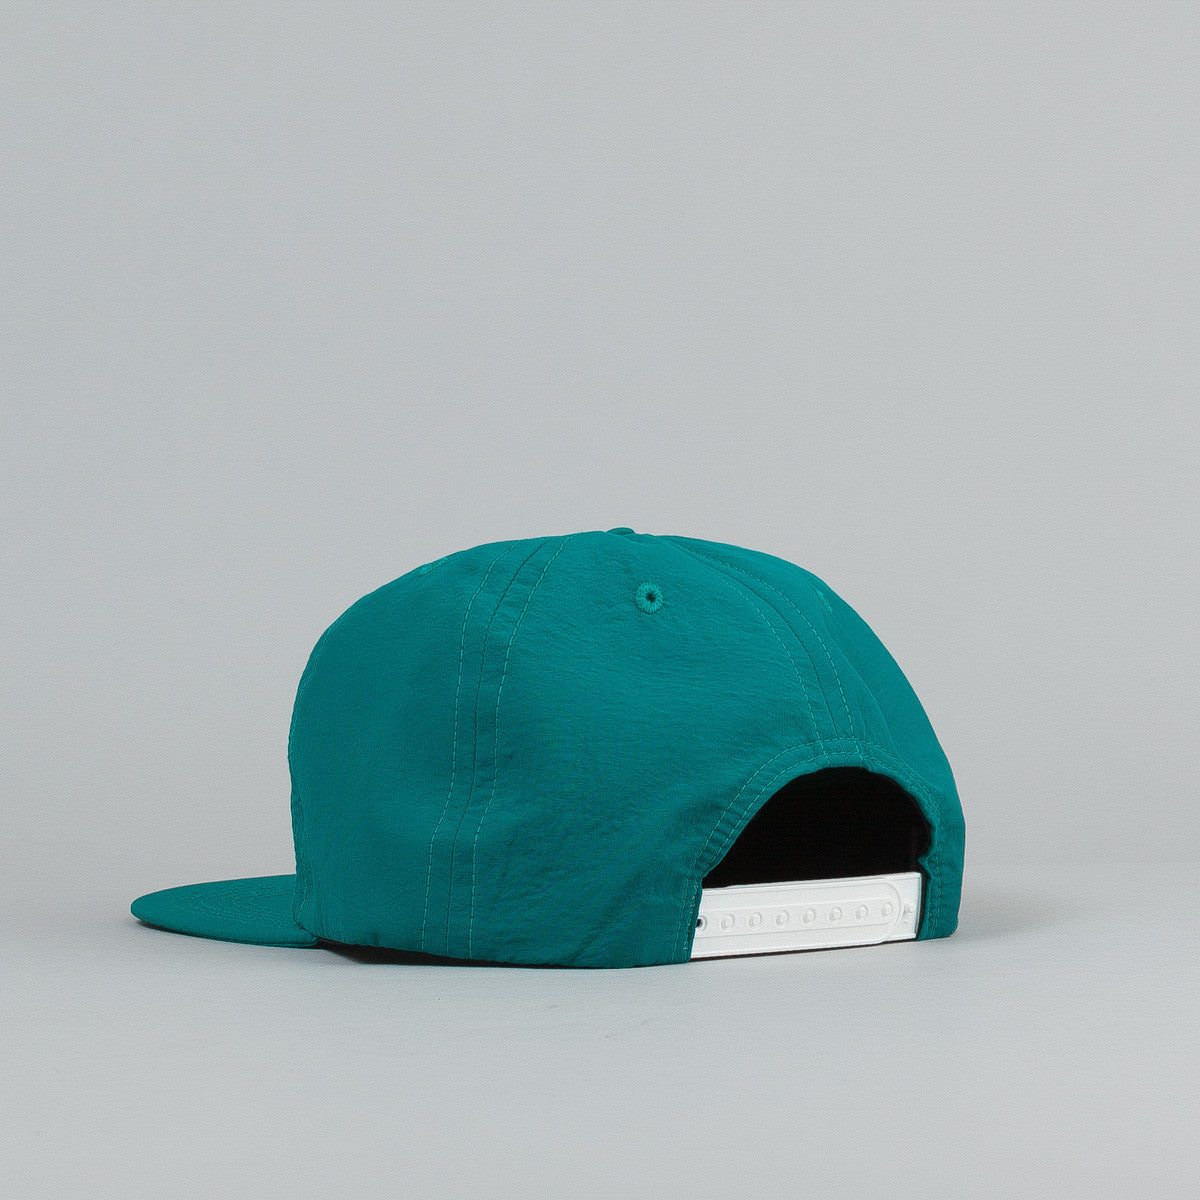 Belief Exploration Snapback Cap - Dark Teal